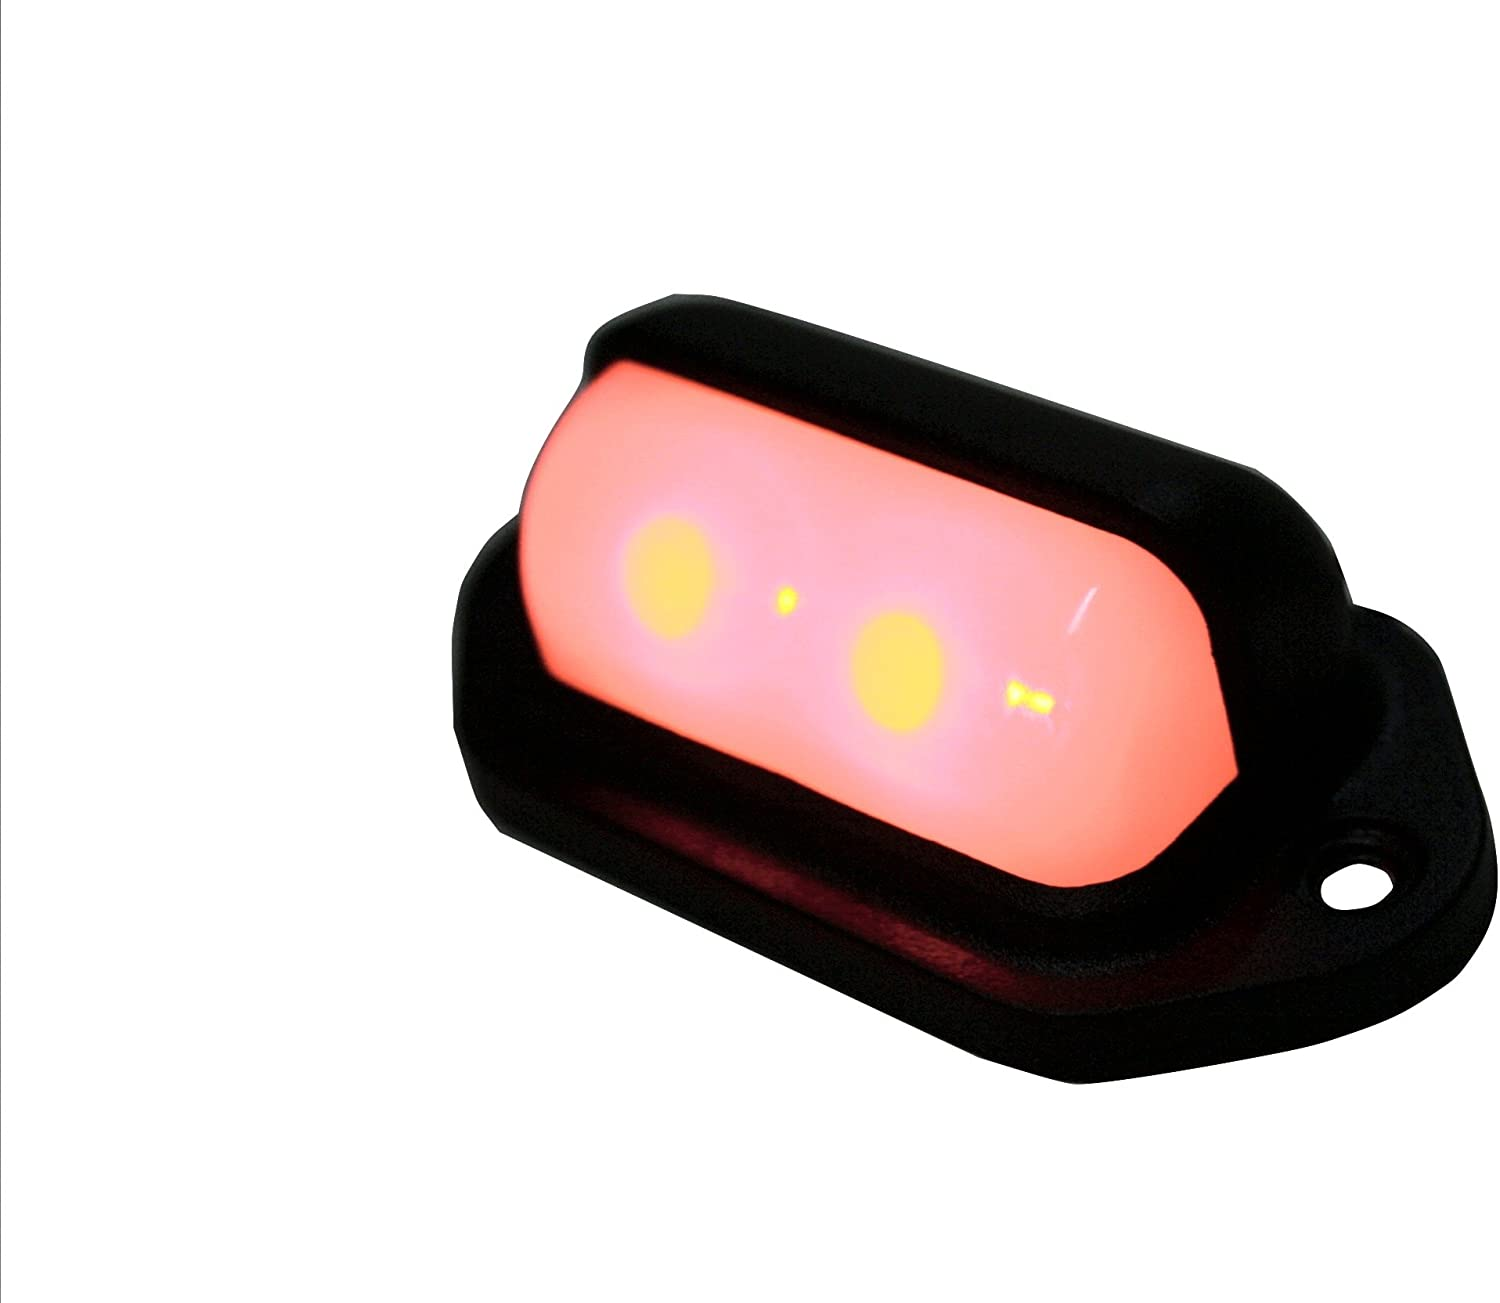 RED LED Compact 24 Volt DC Fixture Truck RV Auto LED Convenience Courtesy Light Aircraft lighting Waterproof